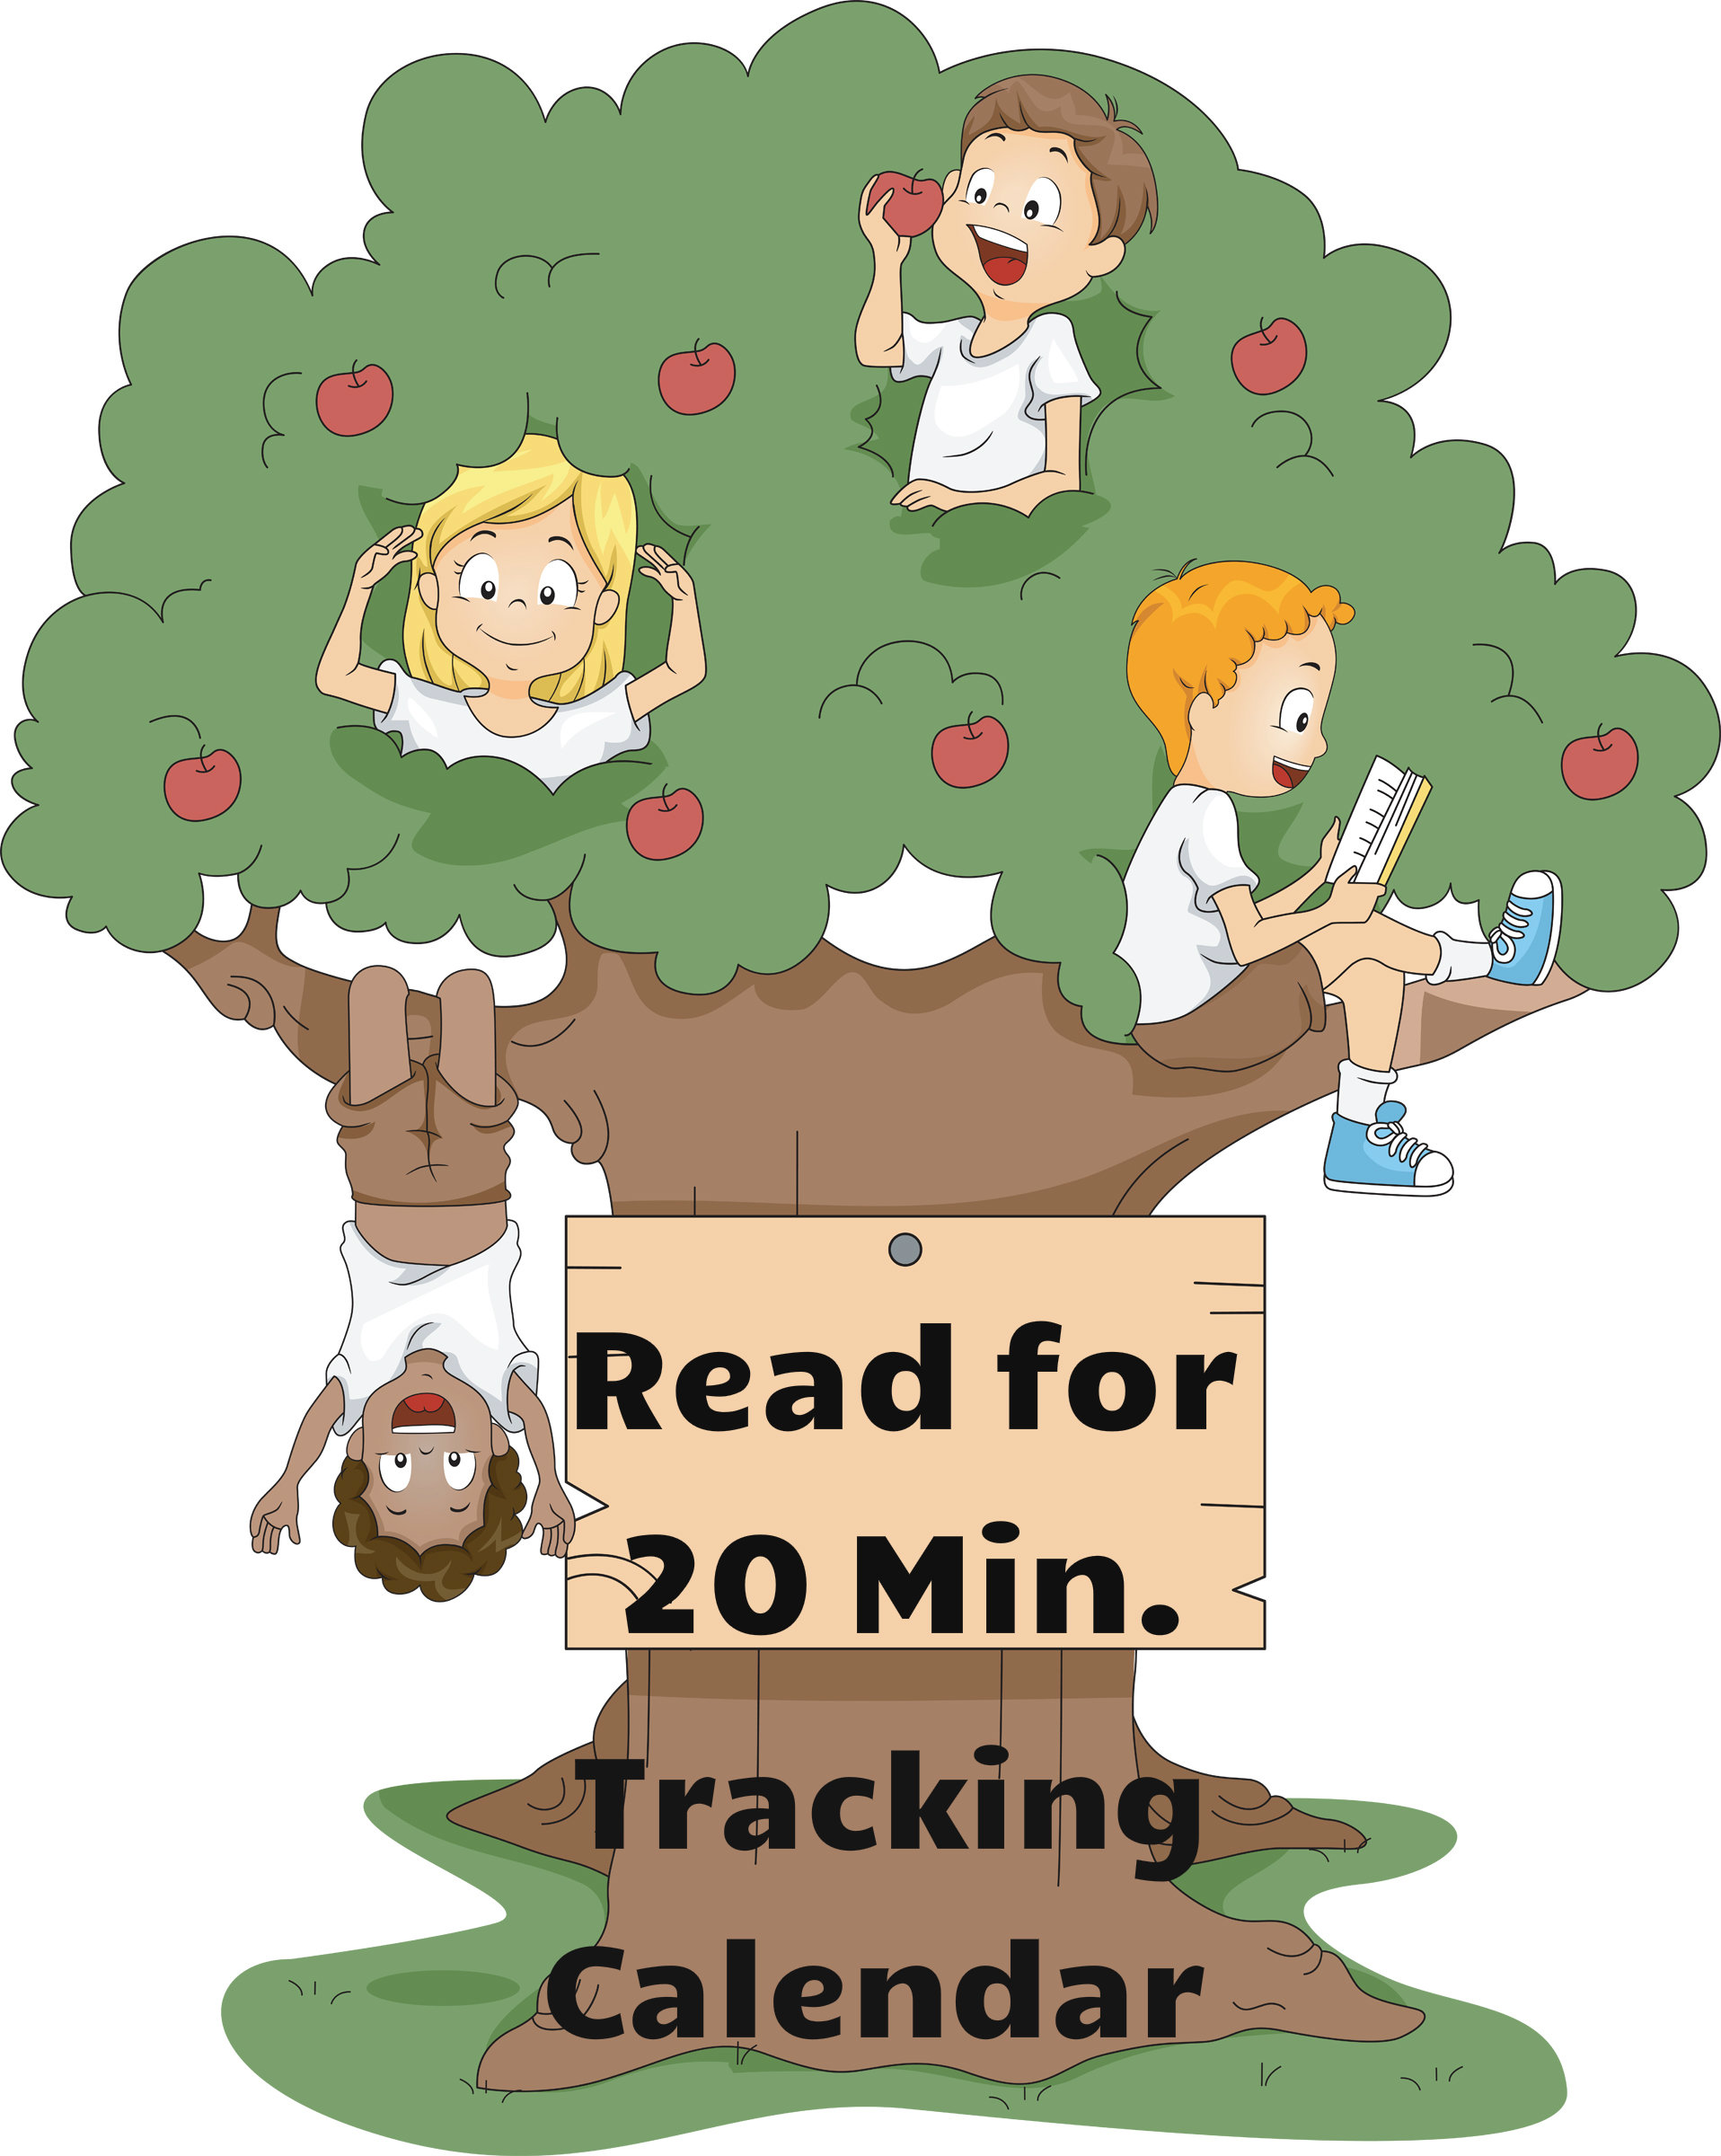 Read for 20 minutes coloring/tracking calendar